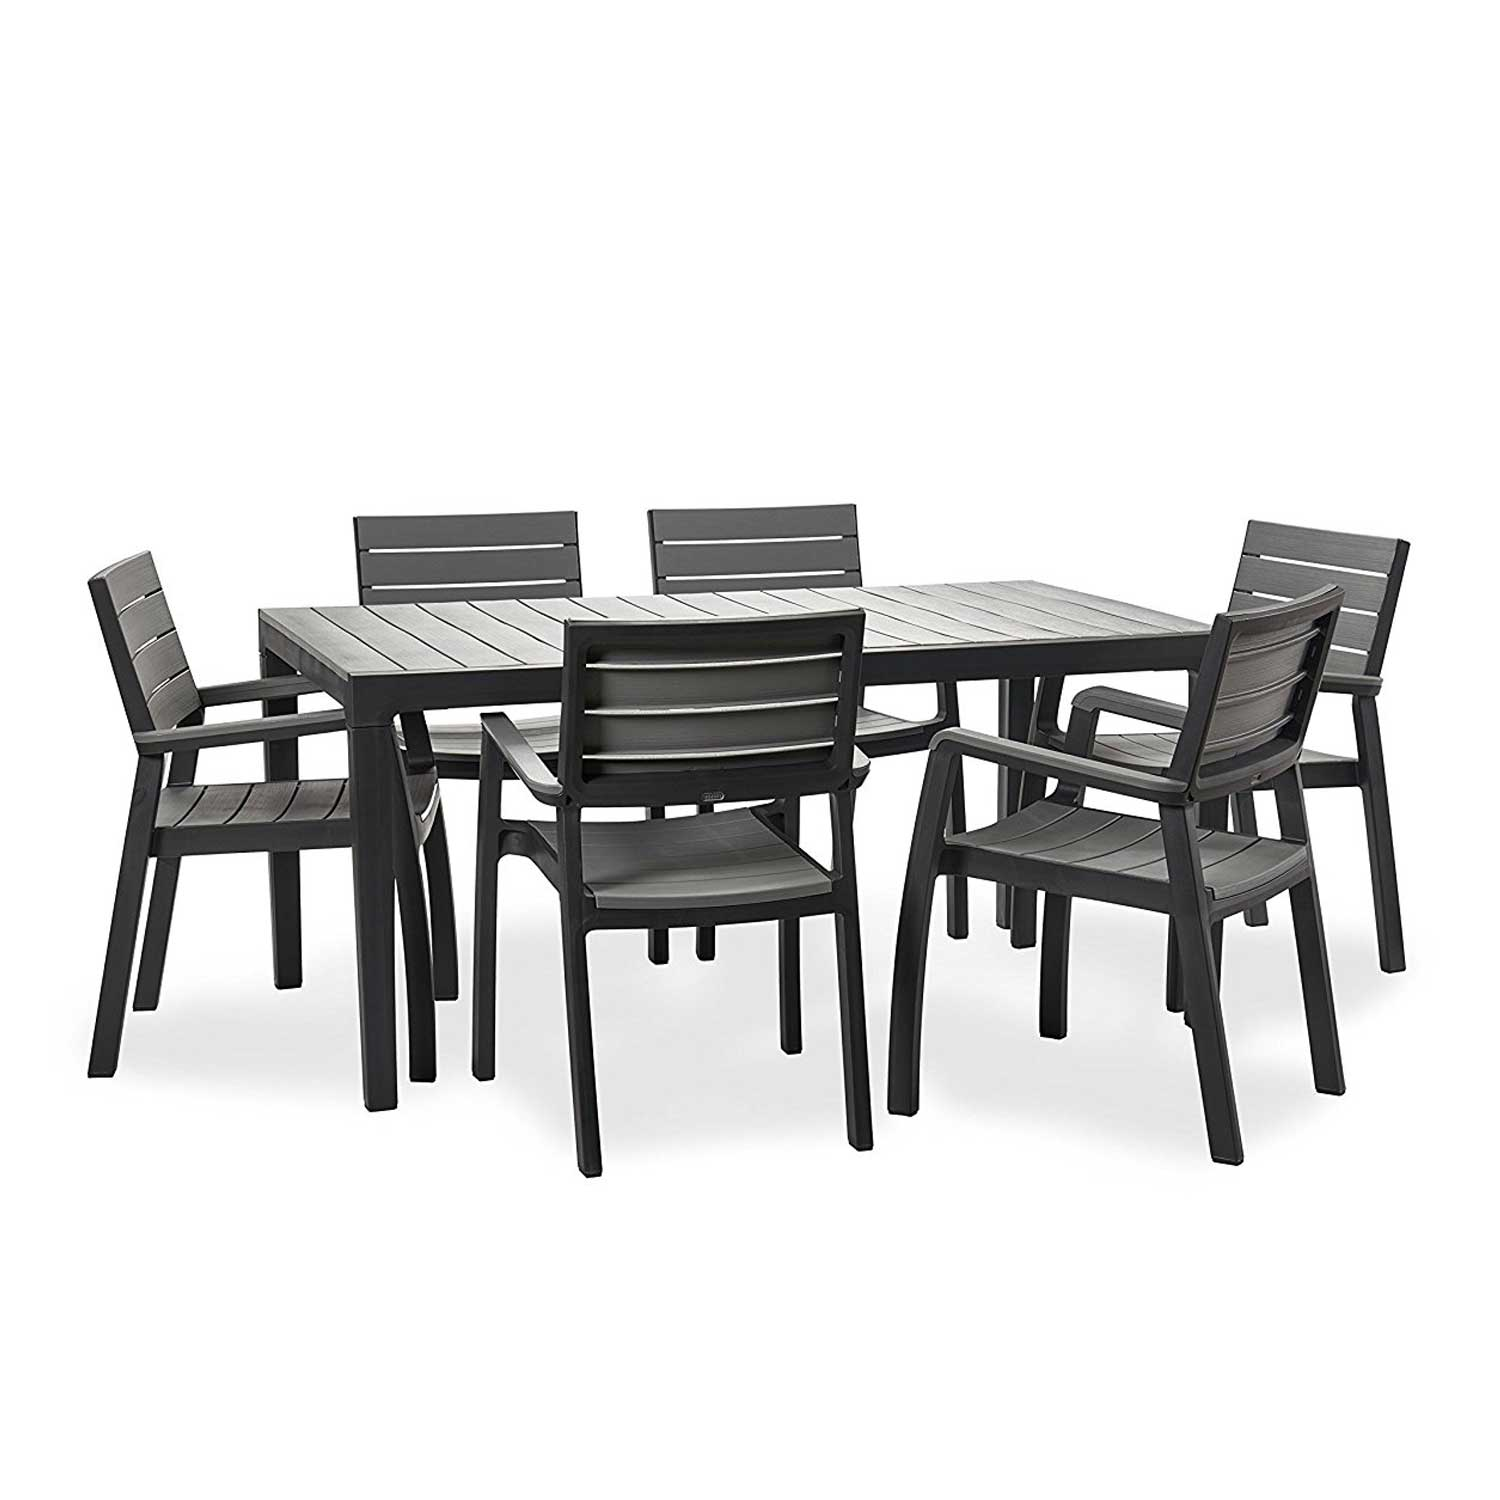 Keter Harmony Grey 6 Seat Dining Set